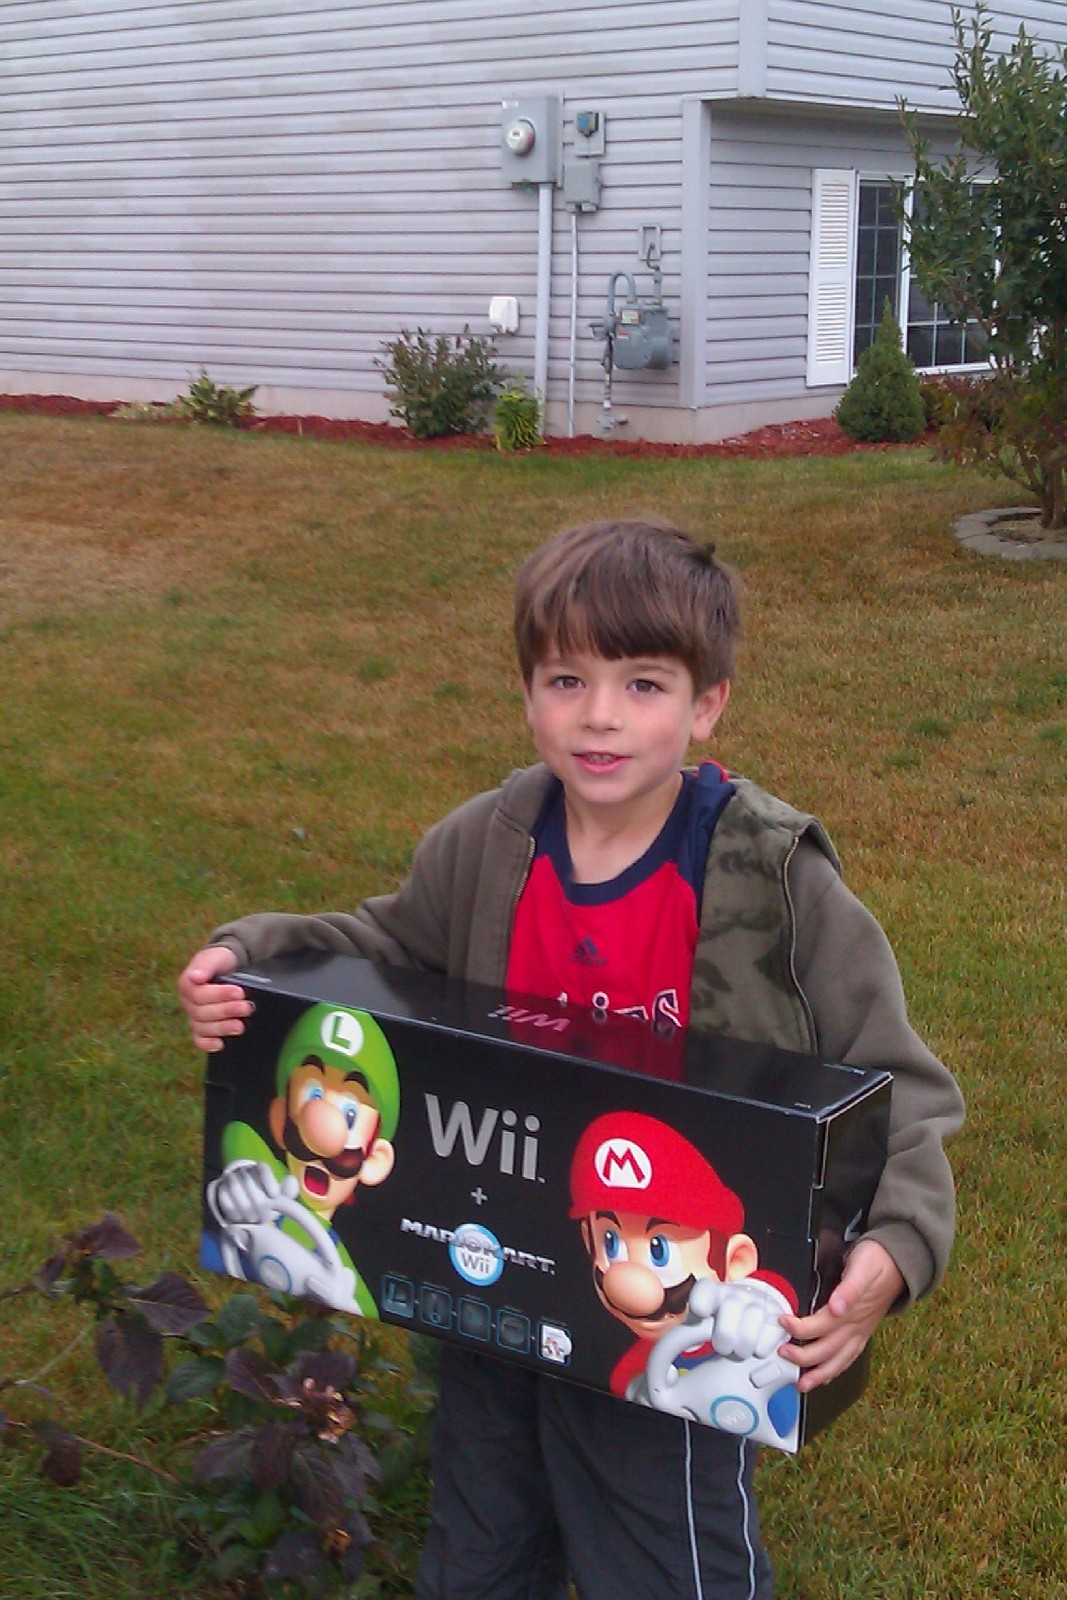 Results: How Pocket Your Dollars Helps 2nd Grader Buy Wii Gaming System